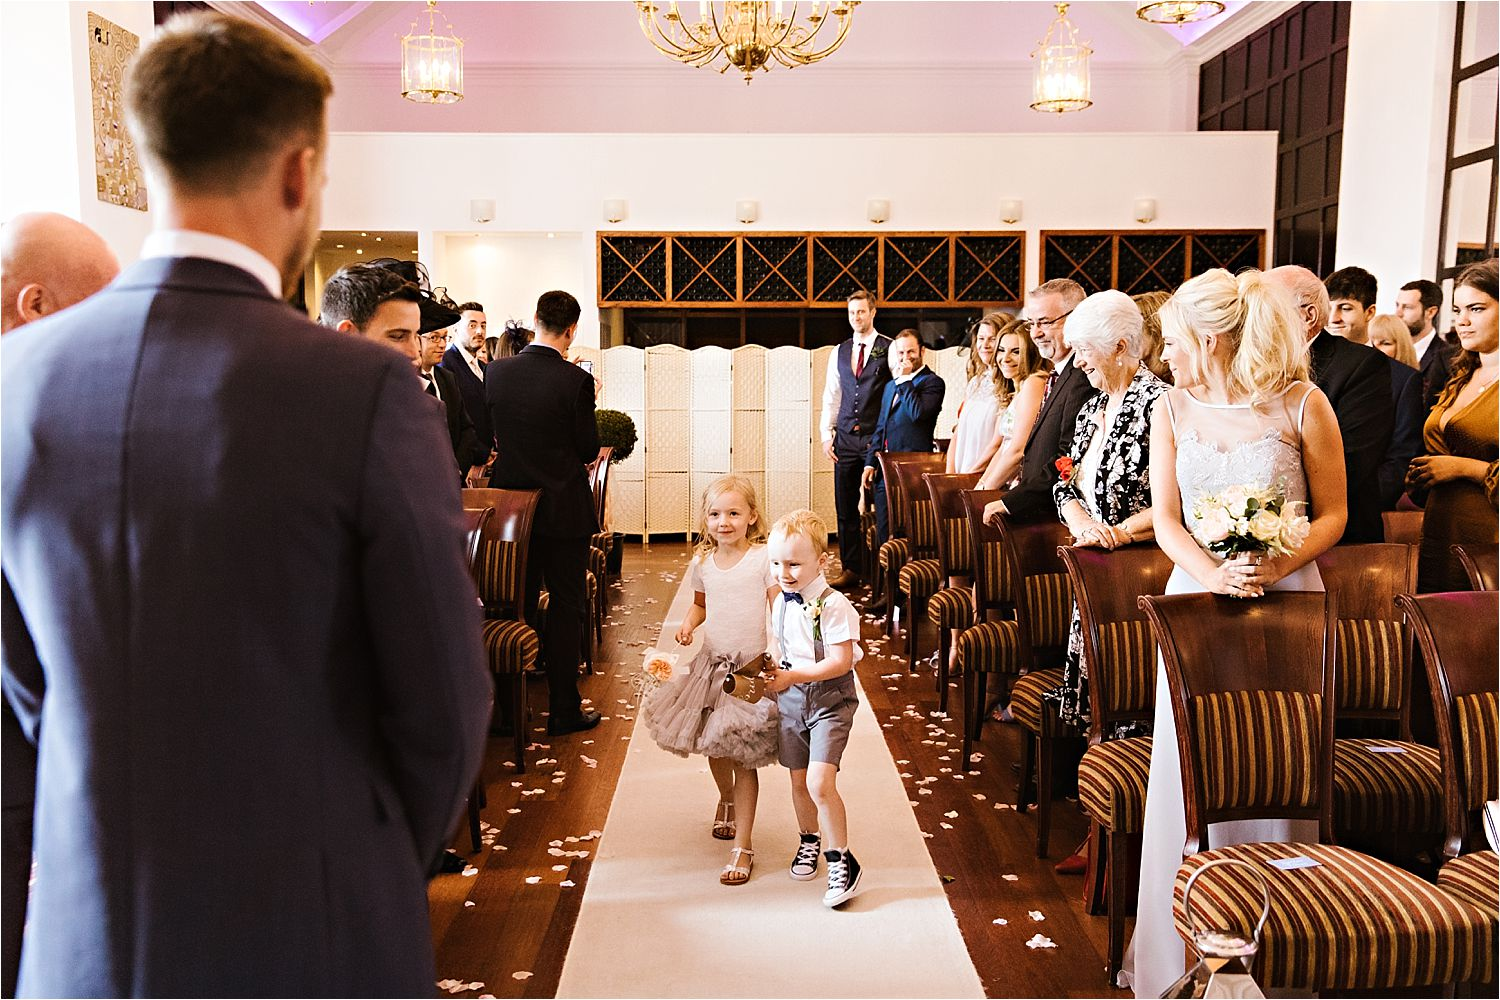 Flower girl and page boy walk down the aisle at Low Wood Bay wedding